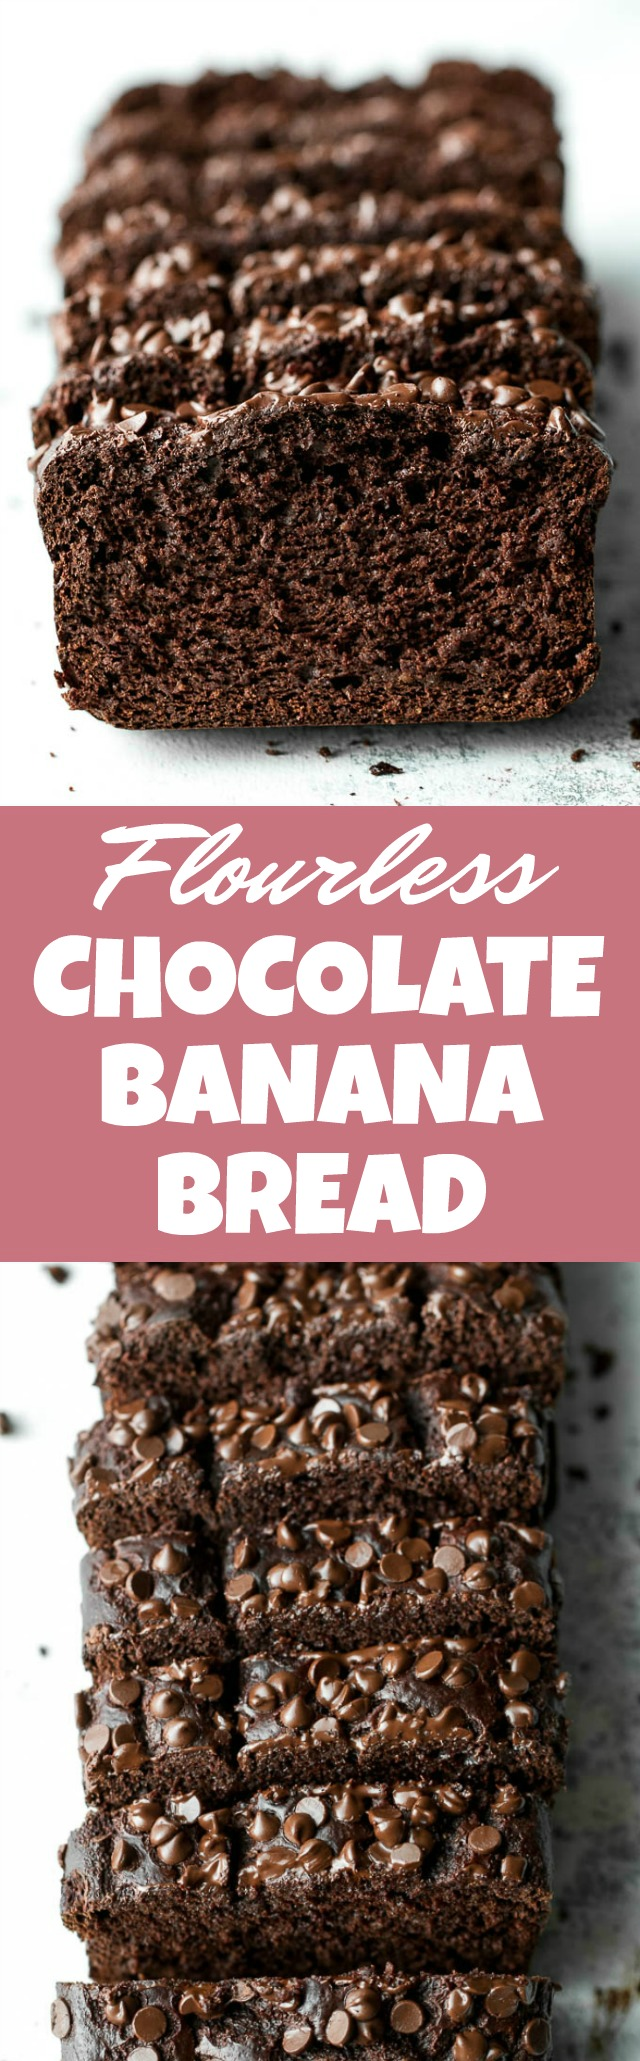 Flourless Chocolate Banana Bread made with NO flour, butter, or oil, but so soft, tender, and chocolatey that you'd never be able to tell! It's gluten-free, low in refined sugar, and whipped up in the blender in 5 minutes flat! | runningwithspoons.com